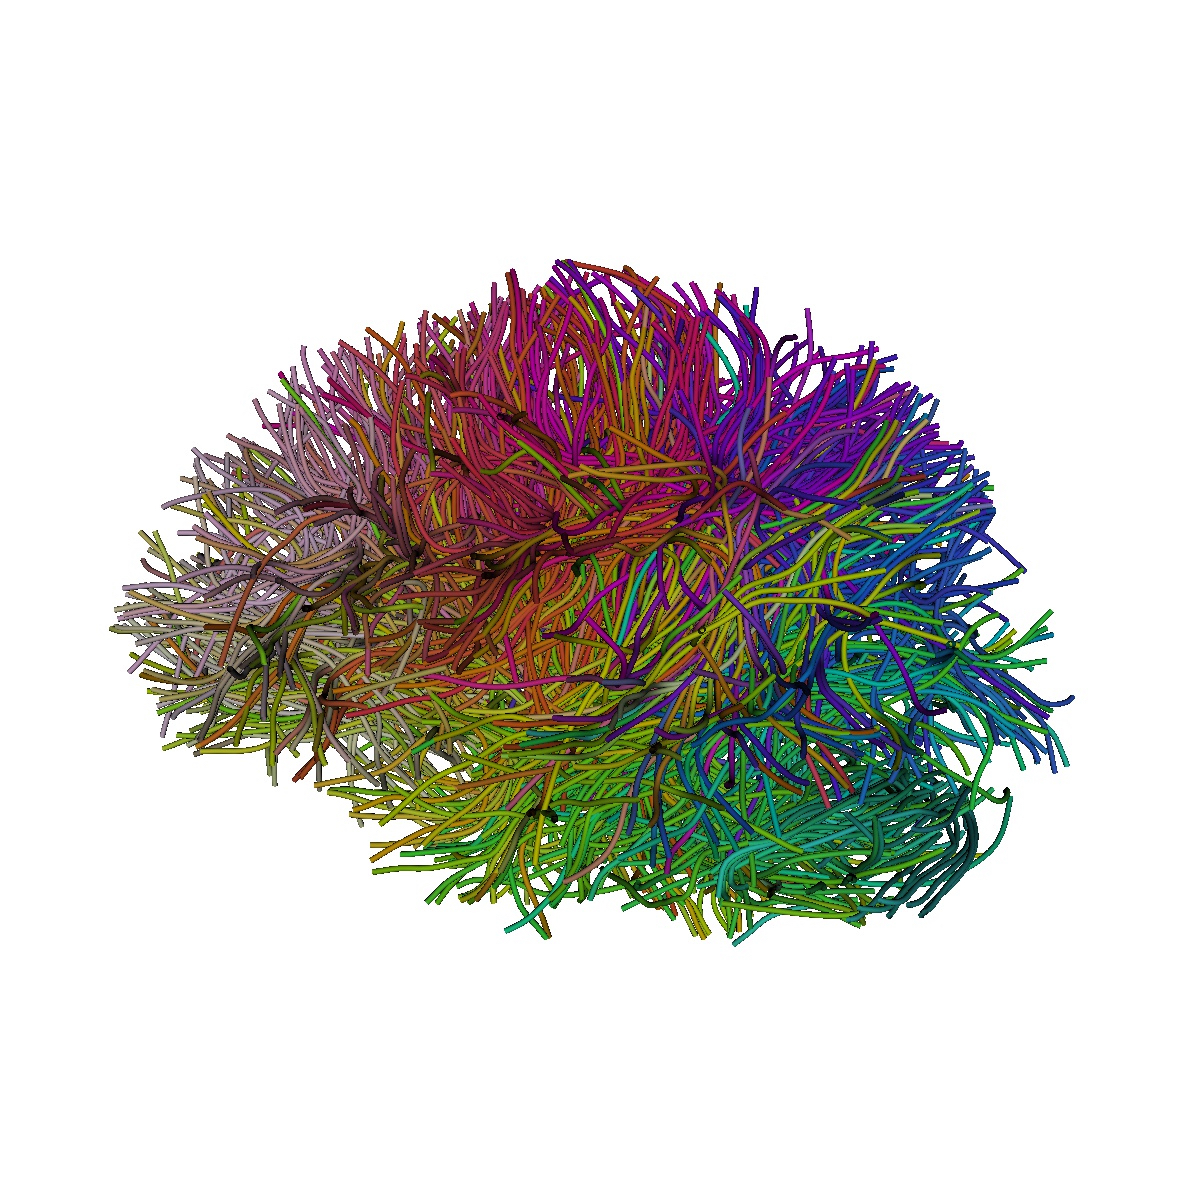 3D reconstruction of white matter tracts in the brain obtained through magnetic resona3D reconstruction of white matter tracts in the brain obtained through magnetic resonance imaging tractographynce imaging tractography